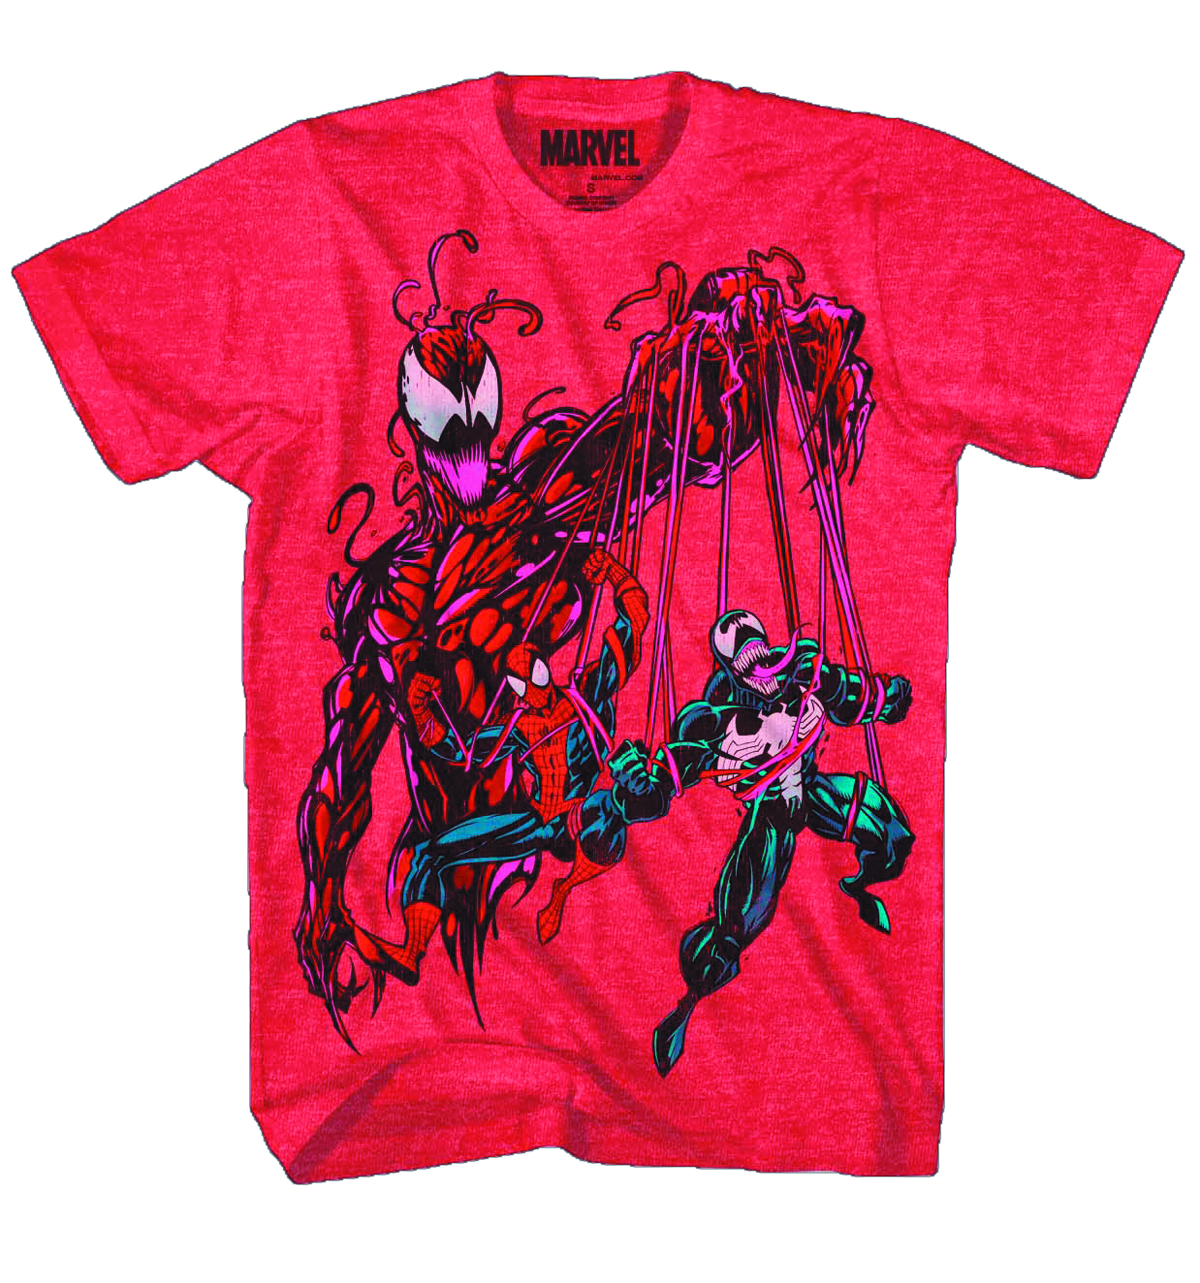 CARNAGE CARNAL PUPPET PX RED HEATHER T/S SM